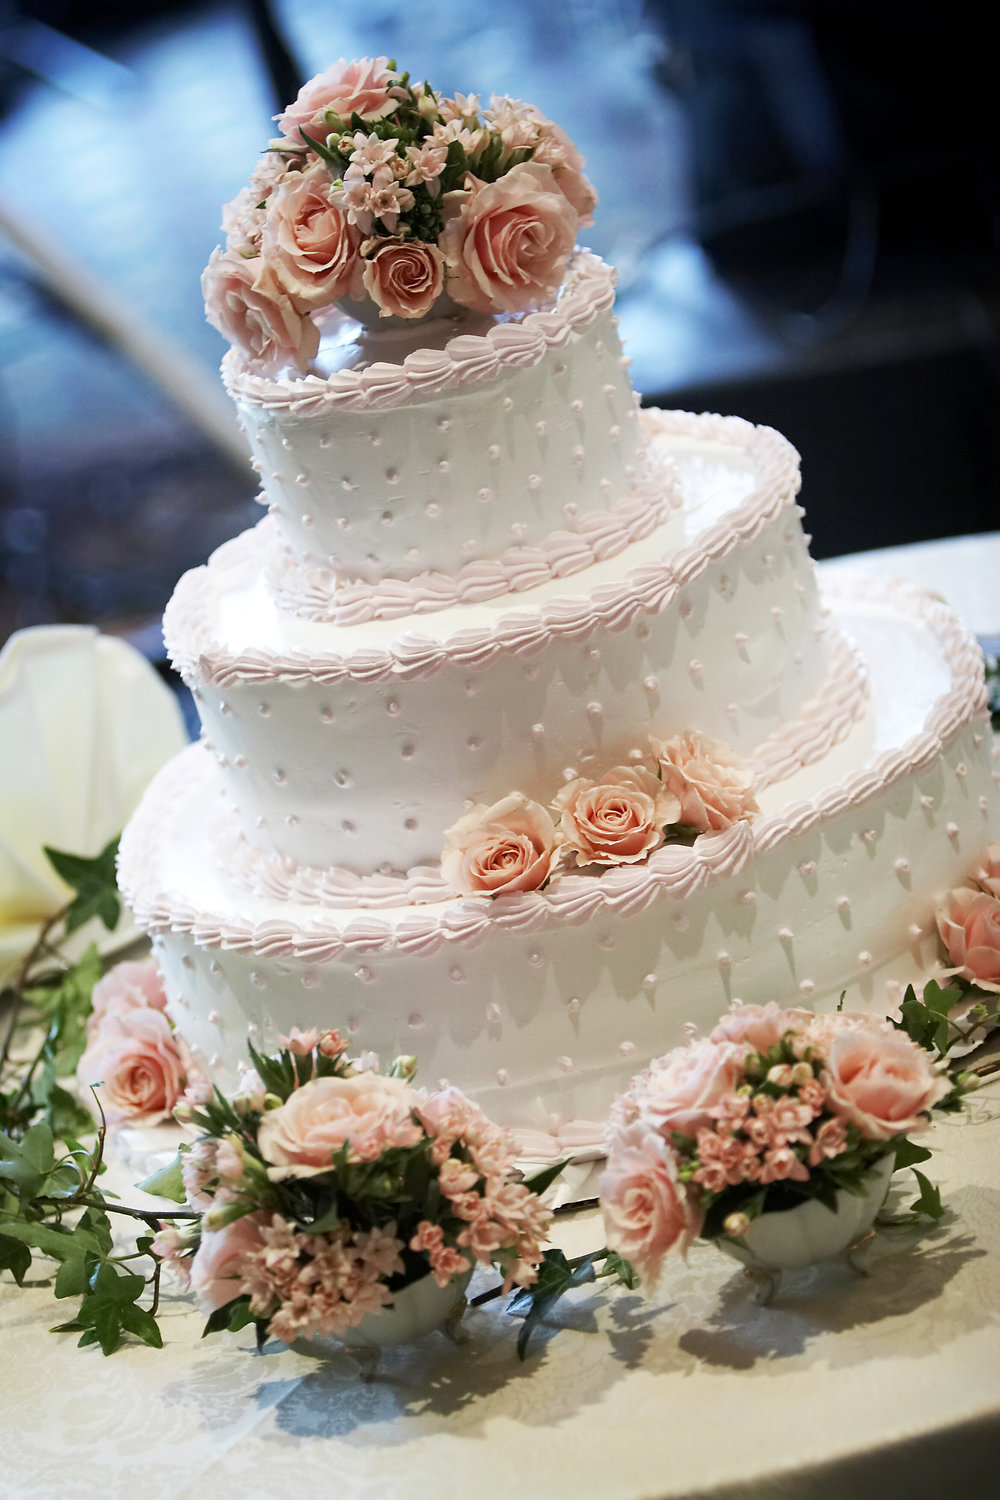 TCP Wedding Cake classic border dots and roses.jpeg